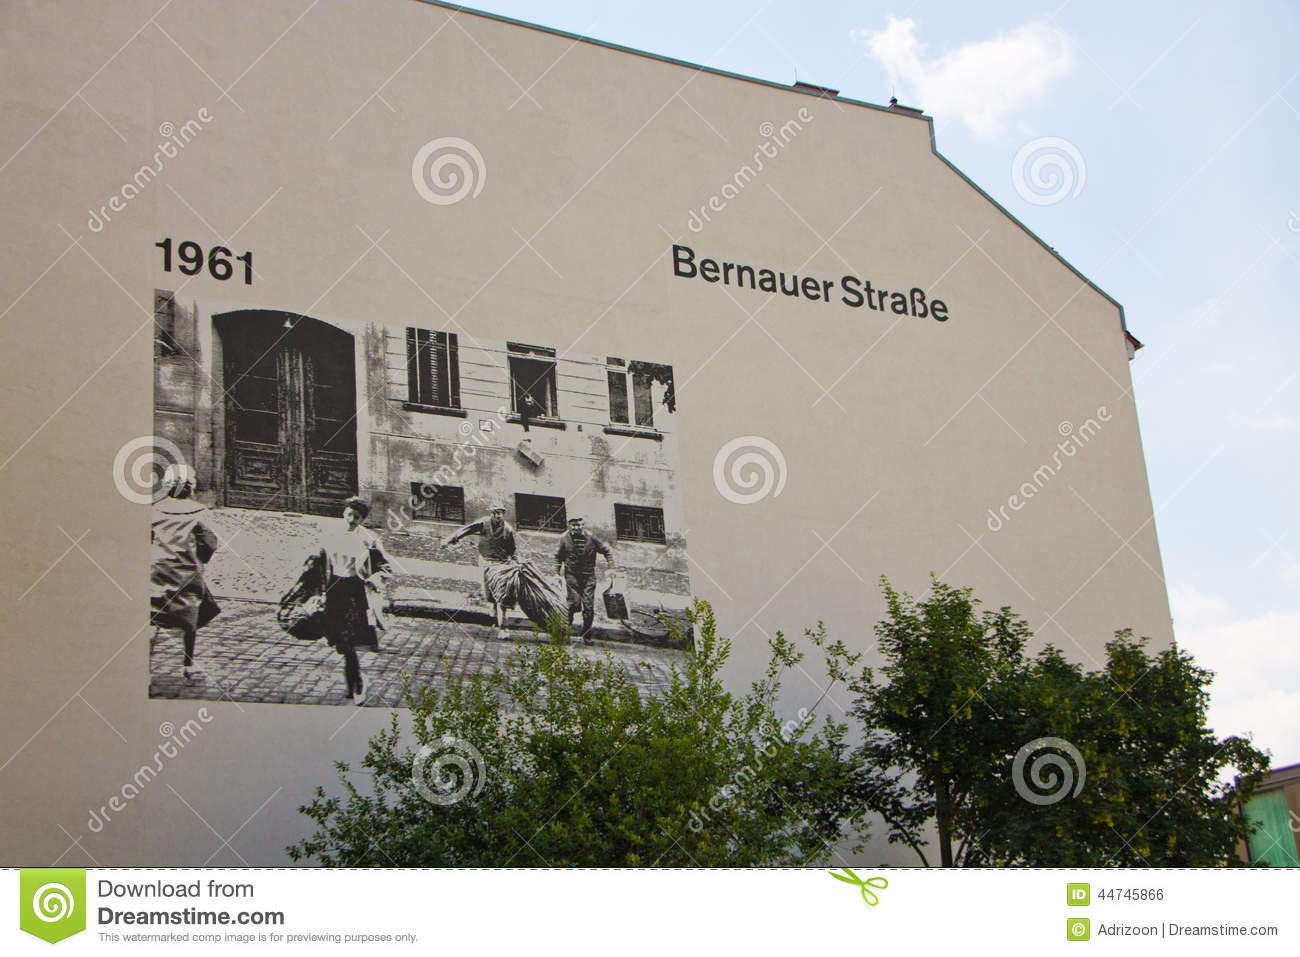 The Berlin Wall Memorial. Bernauer Strasse. Editorial Photo.